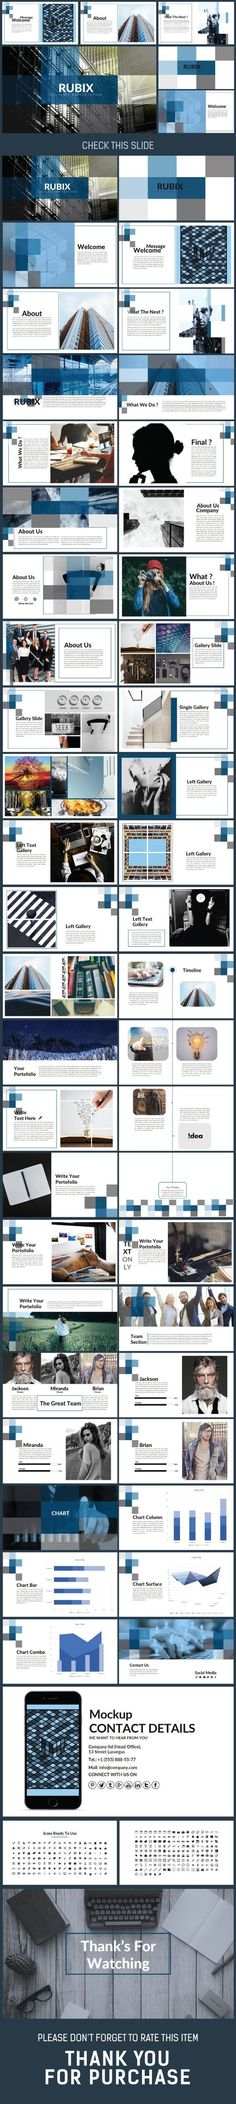 RUBIX - Presentation PowerPoint Template: #InphographicInfographics